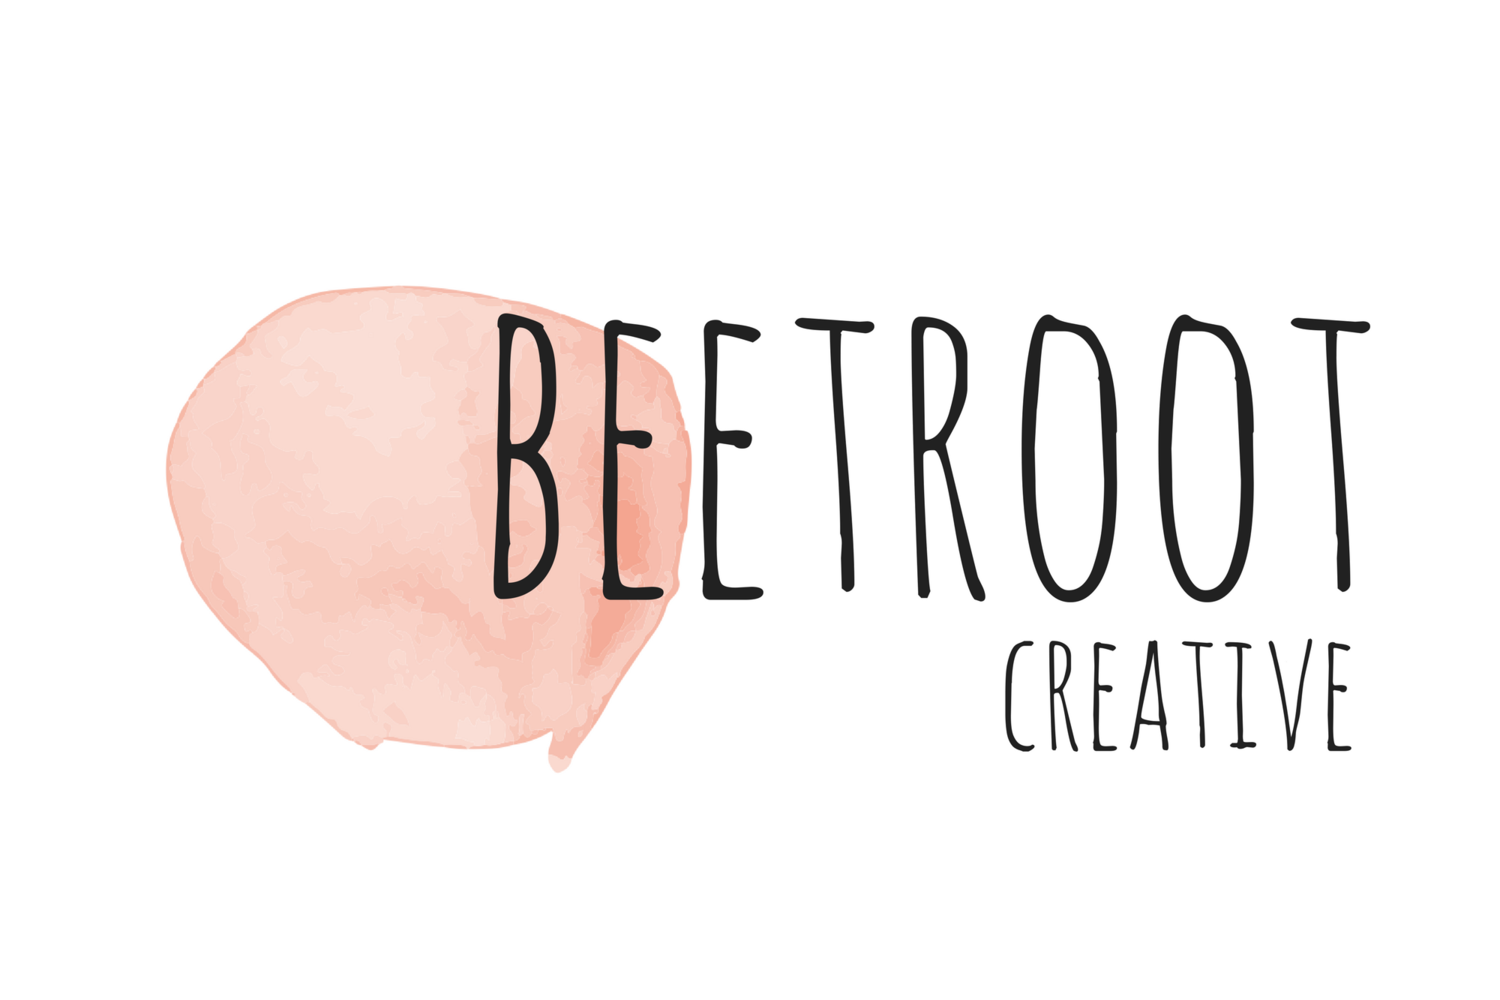 Beetroot Creative